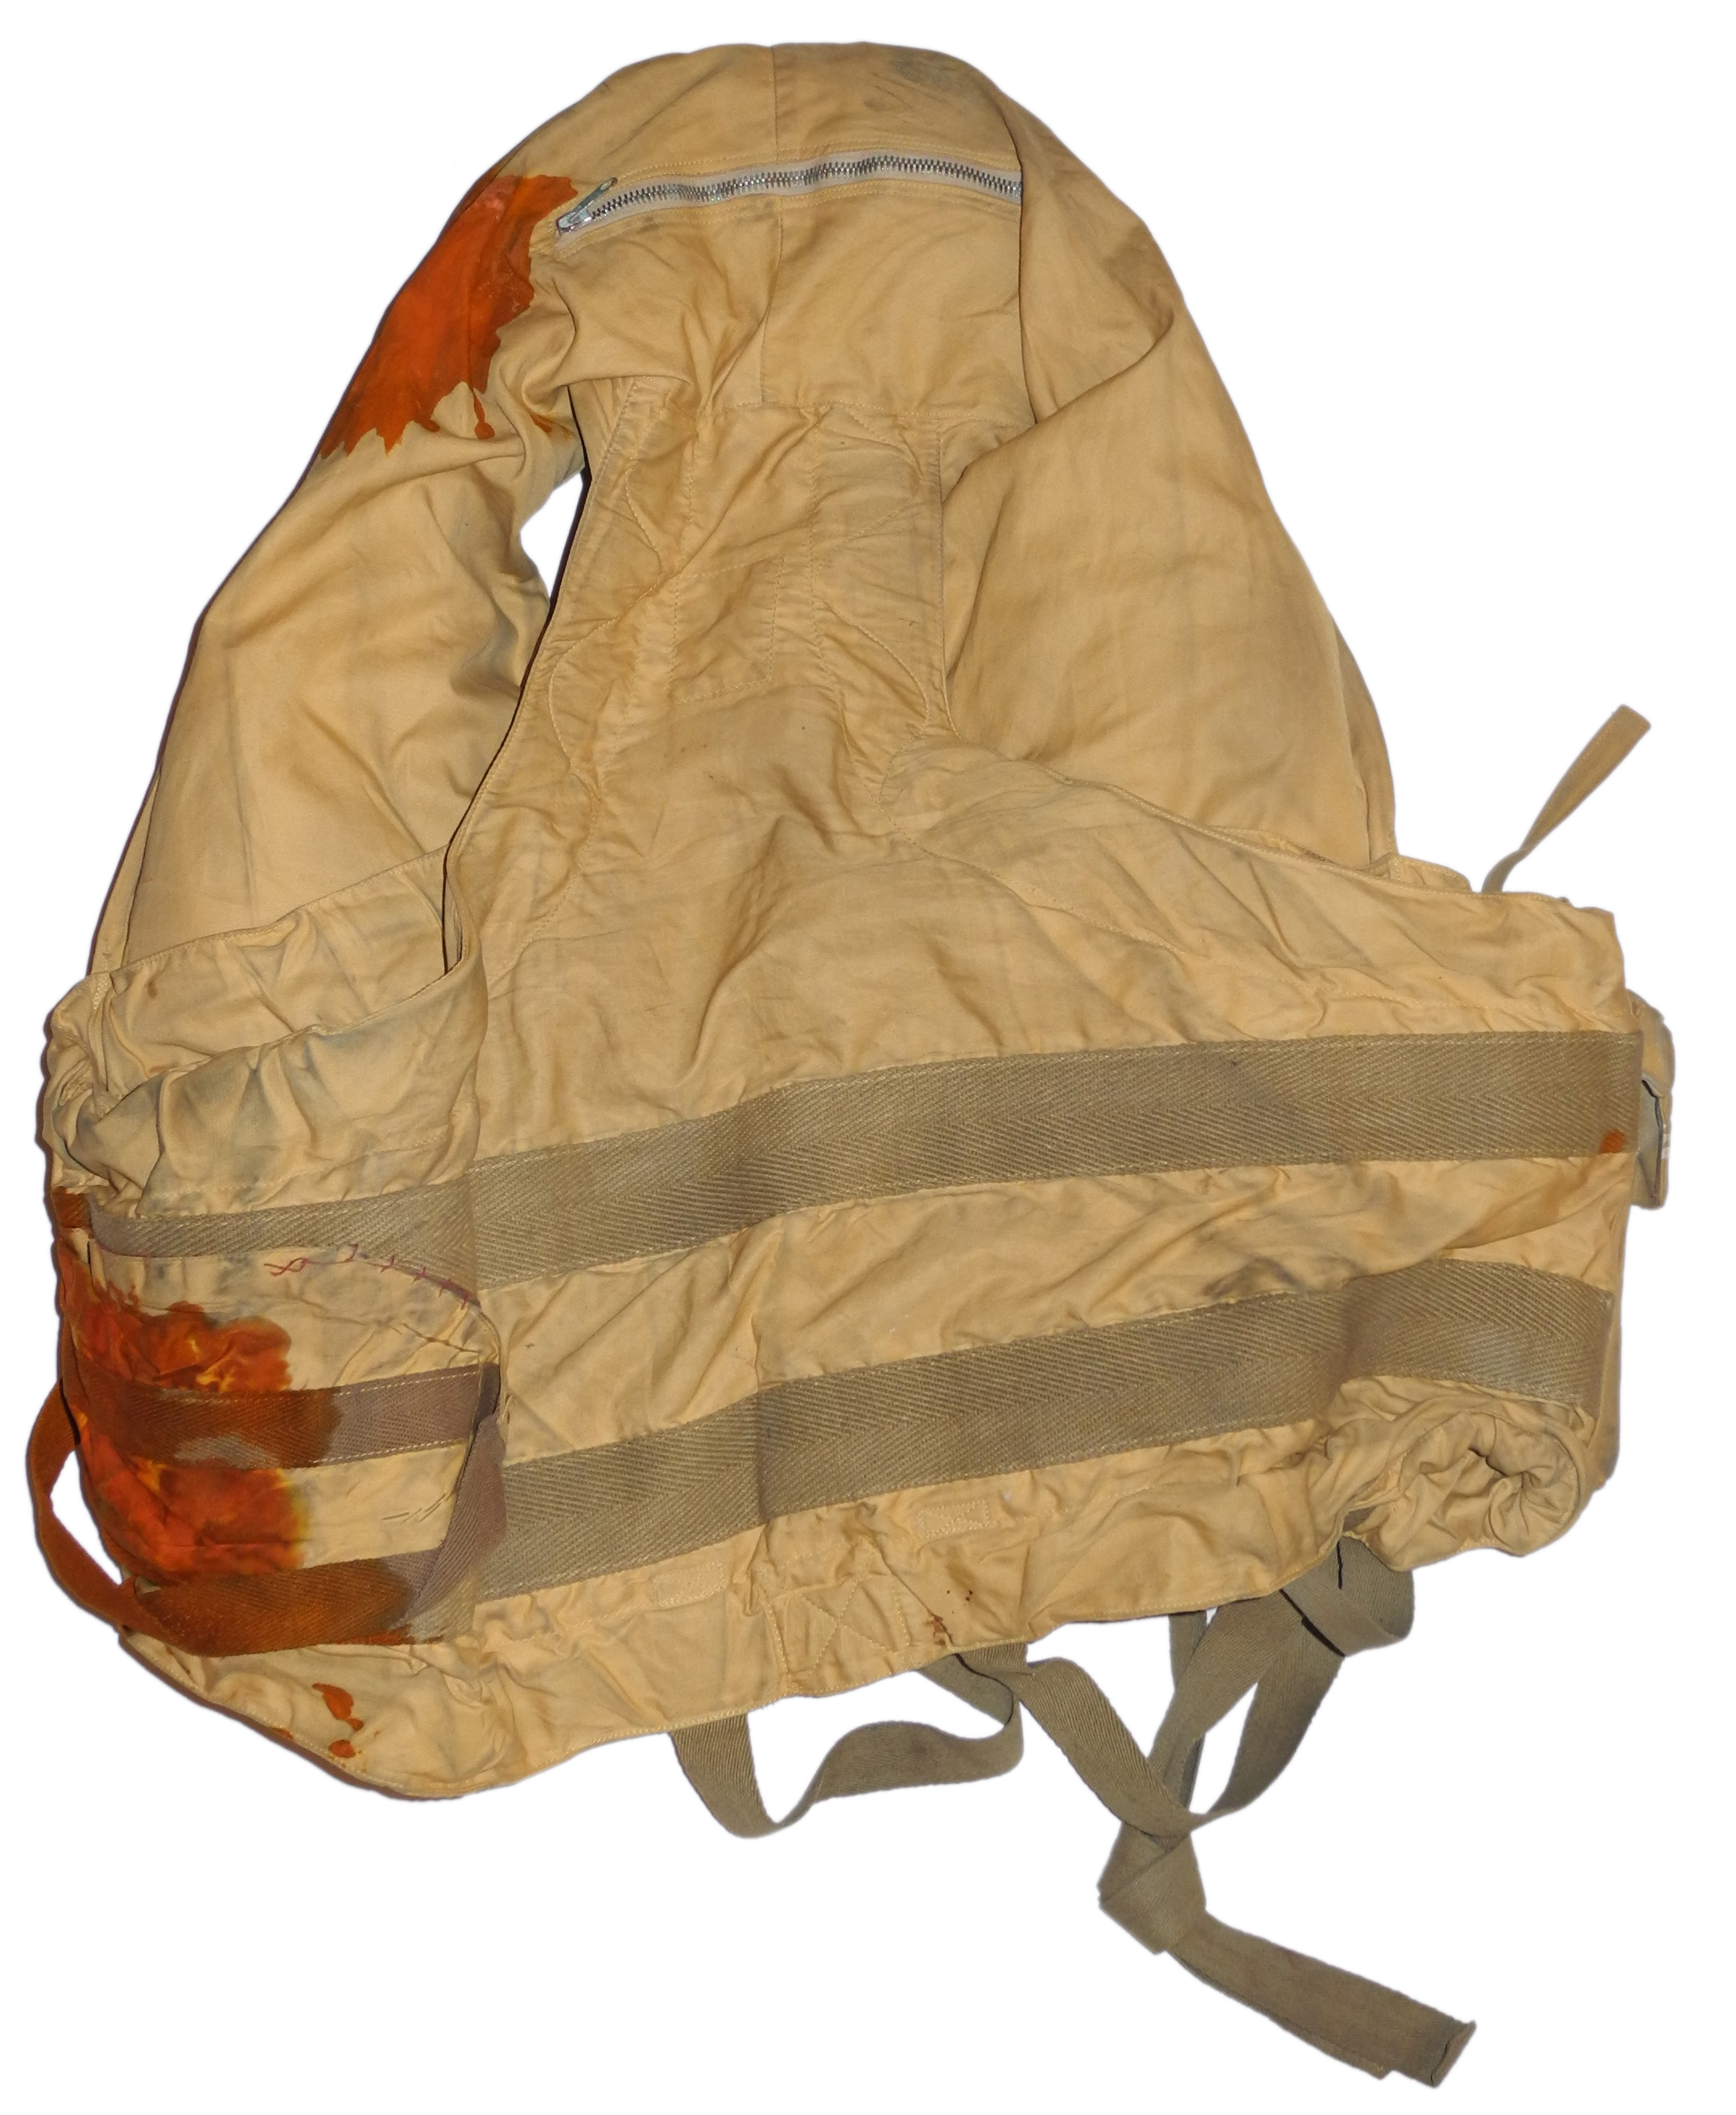 FAA 1941 pattern life vest and kit bag